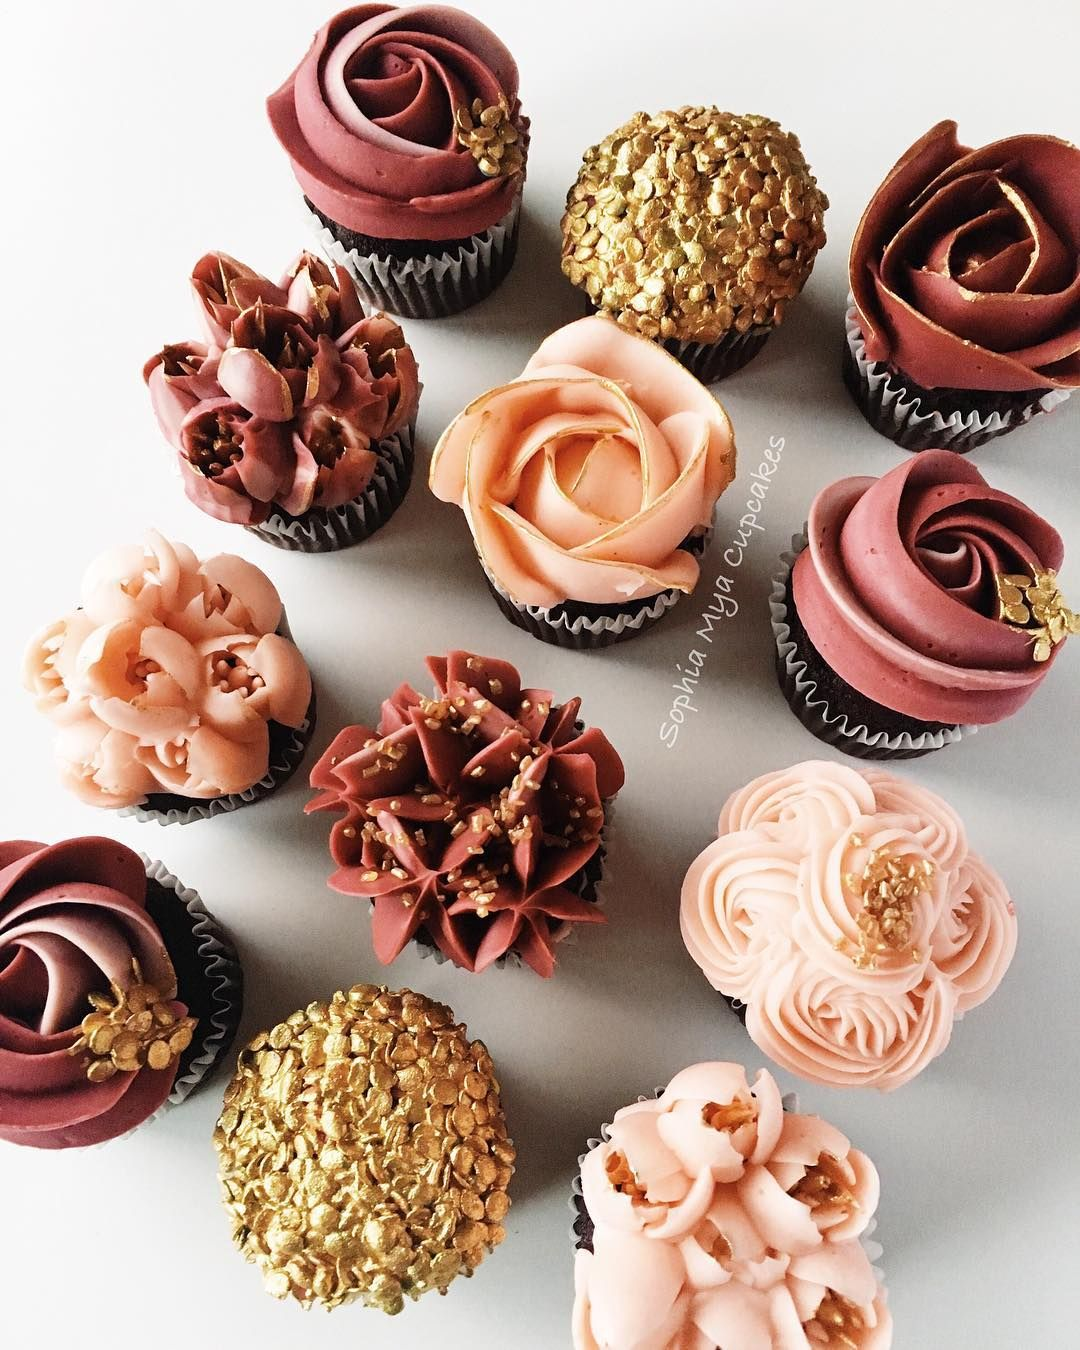 Hochzeit Cupcakes Cupcakes With An Autumn Palette In Burgundy Blush And Gold By